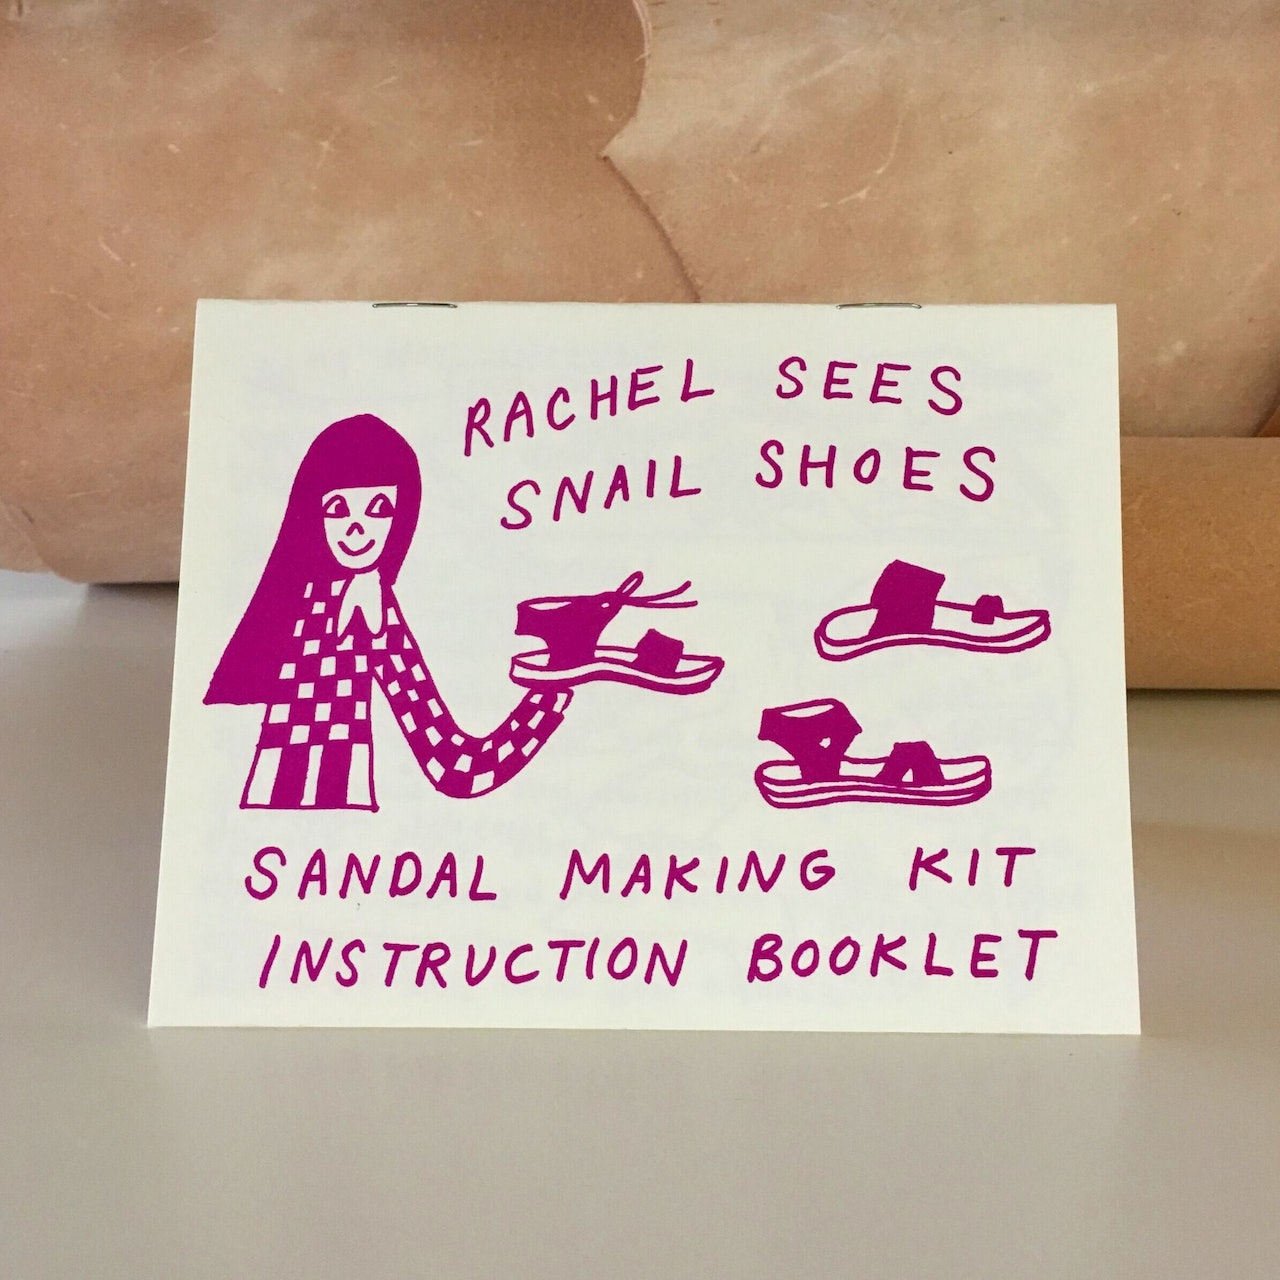 Sandal making kit by Rachel Sees Snail Shoes Portland for Conscious by Chloé